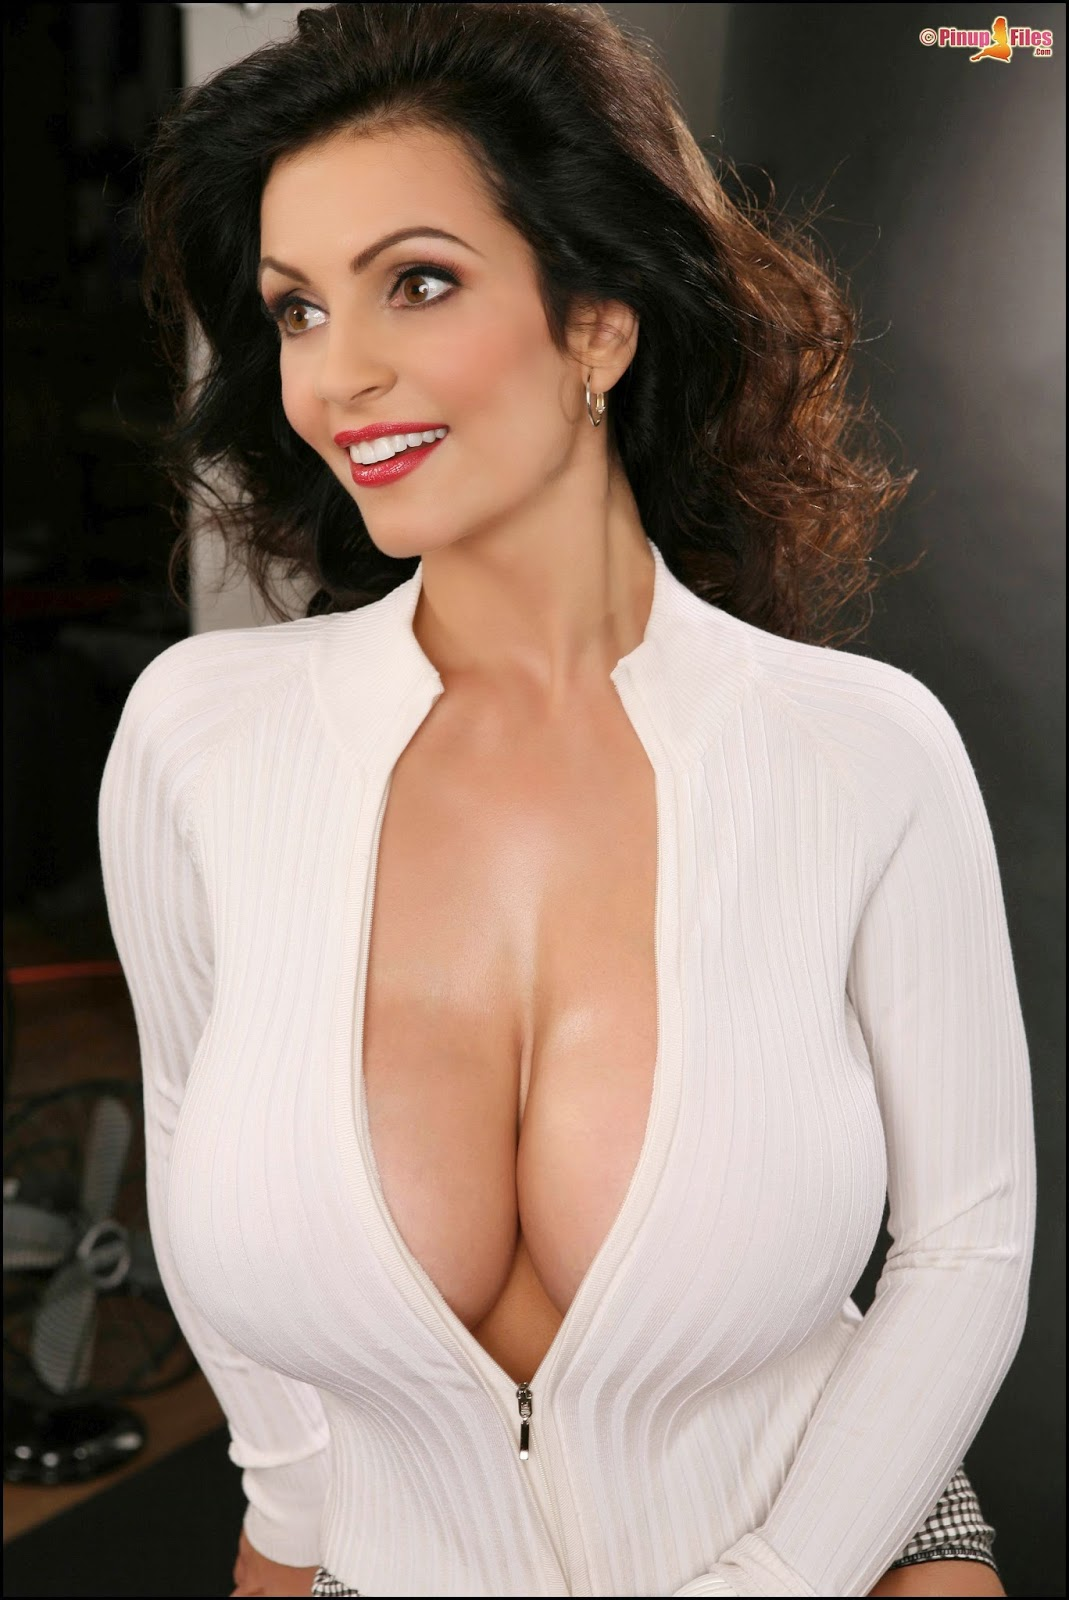 Denise Milani Archives Pinup Files Vol 5-9370